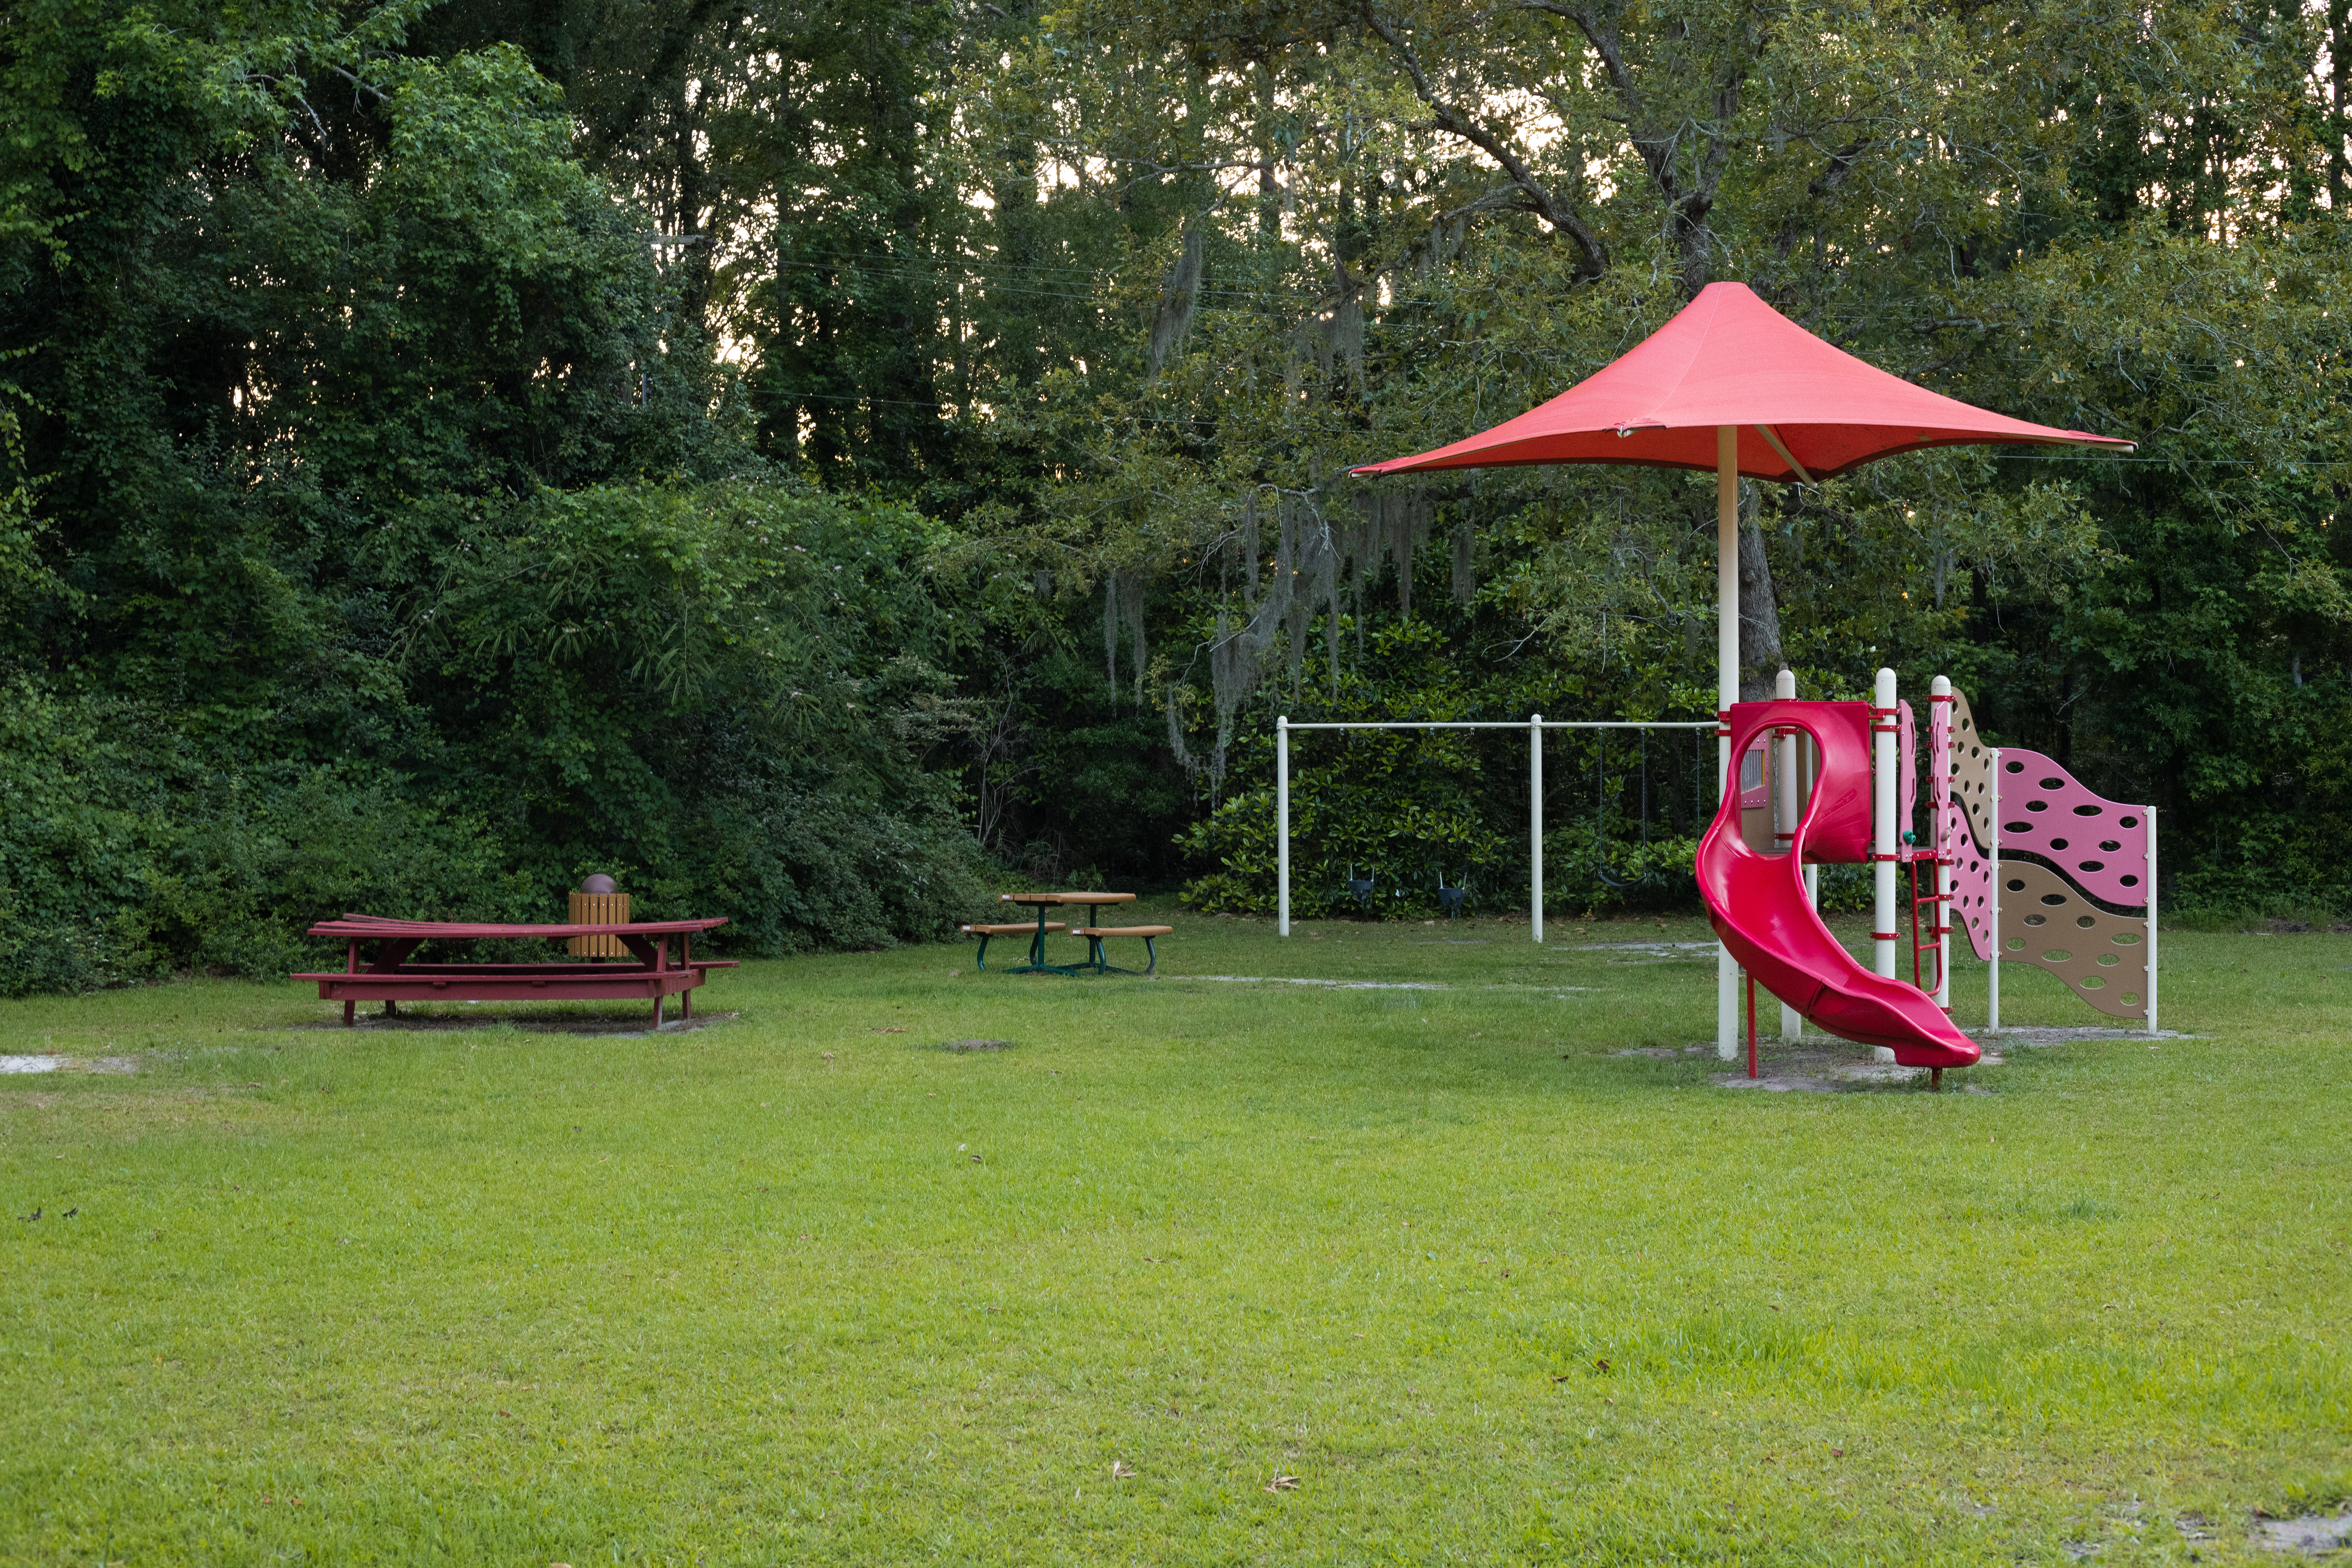 red playground structure and red picnic tables